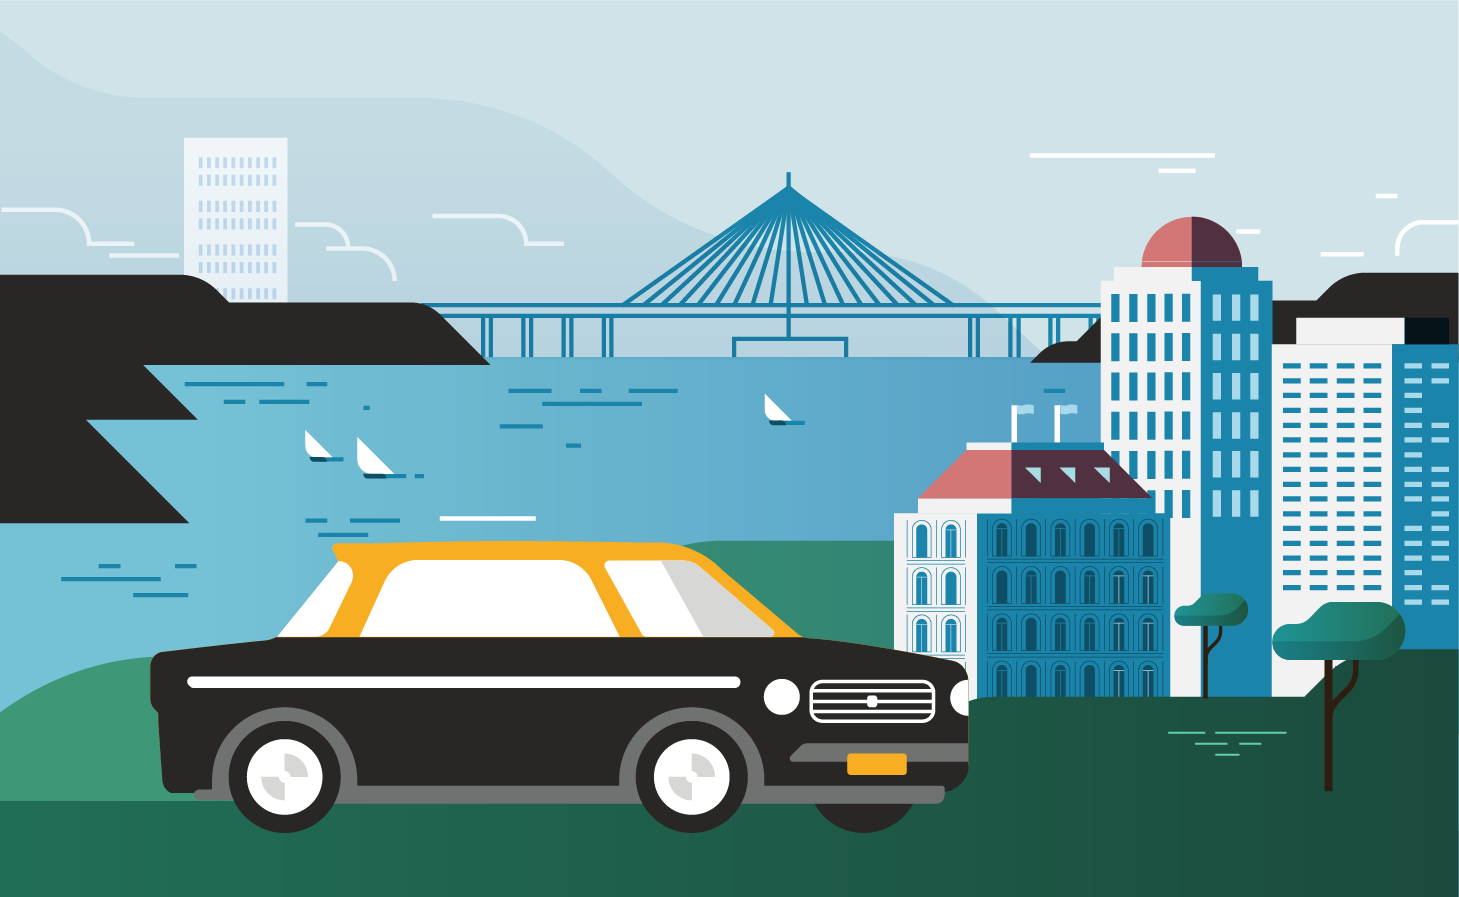 This illustration was created using Uber's vehicle guidelines to ensure that the artwork is consistent with the rest of the product icons. For the launch, I created a few illustrations with Mumbai's landscape using a custom colour palette, along with all App icons.